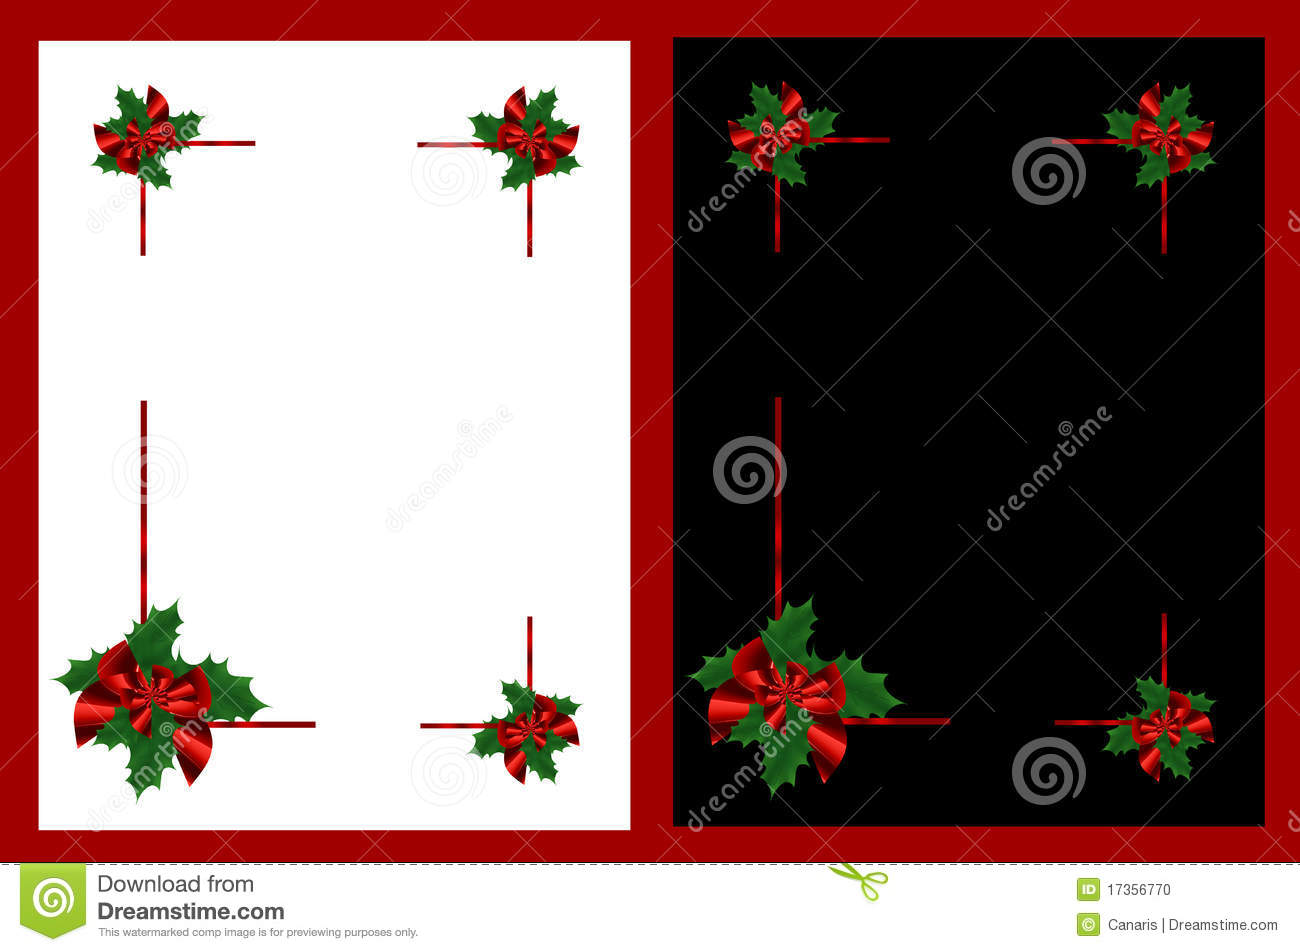 Frames isolados do Natal